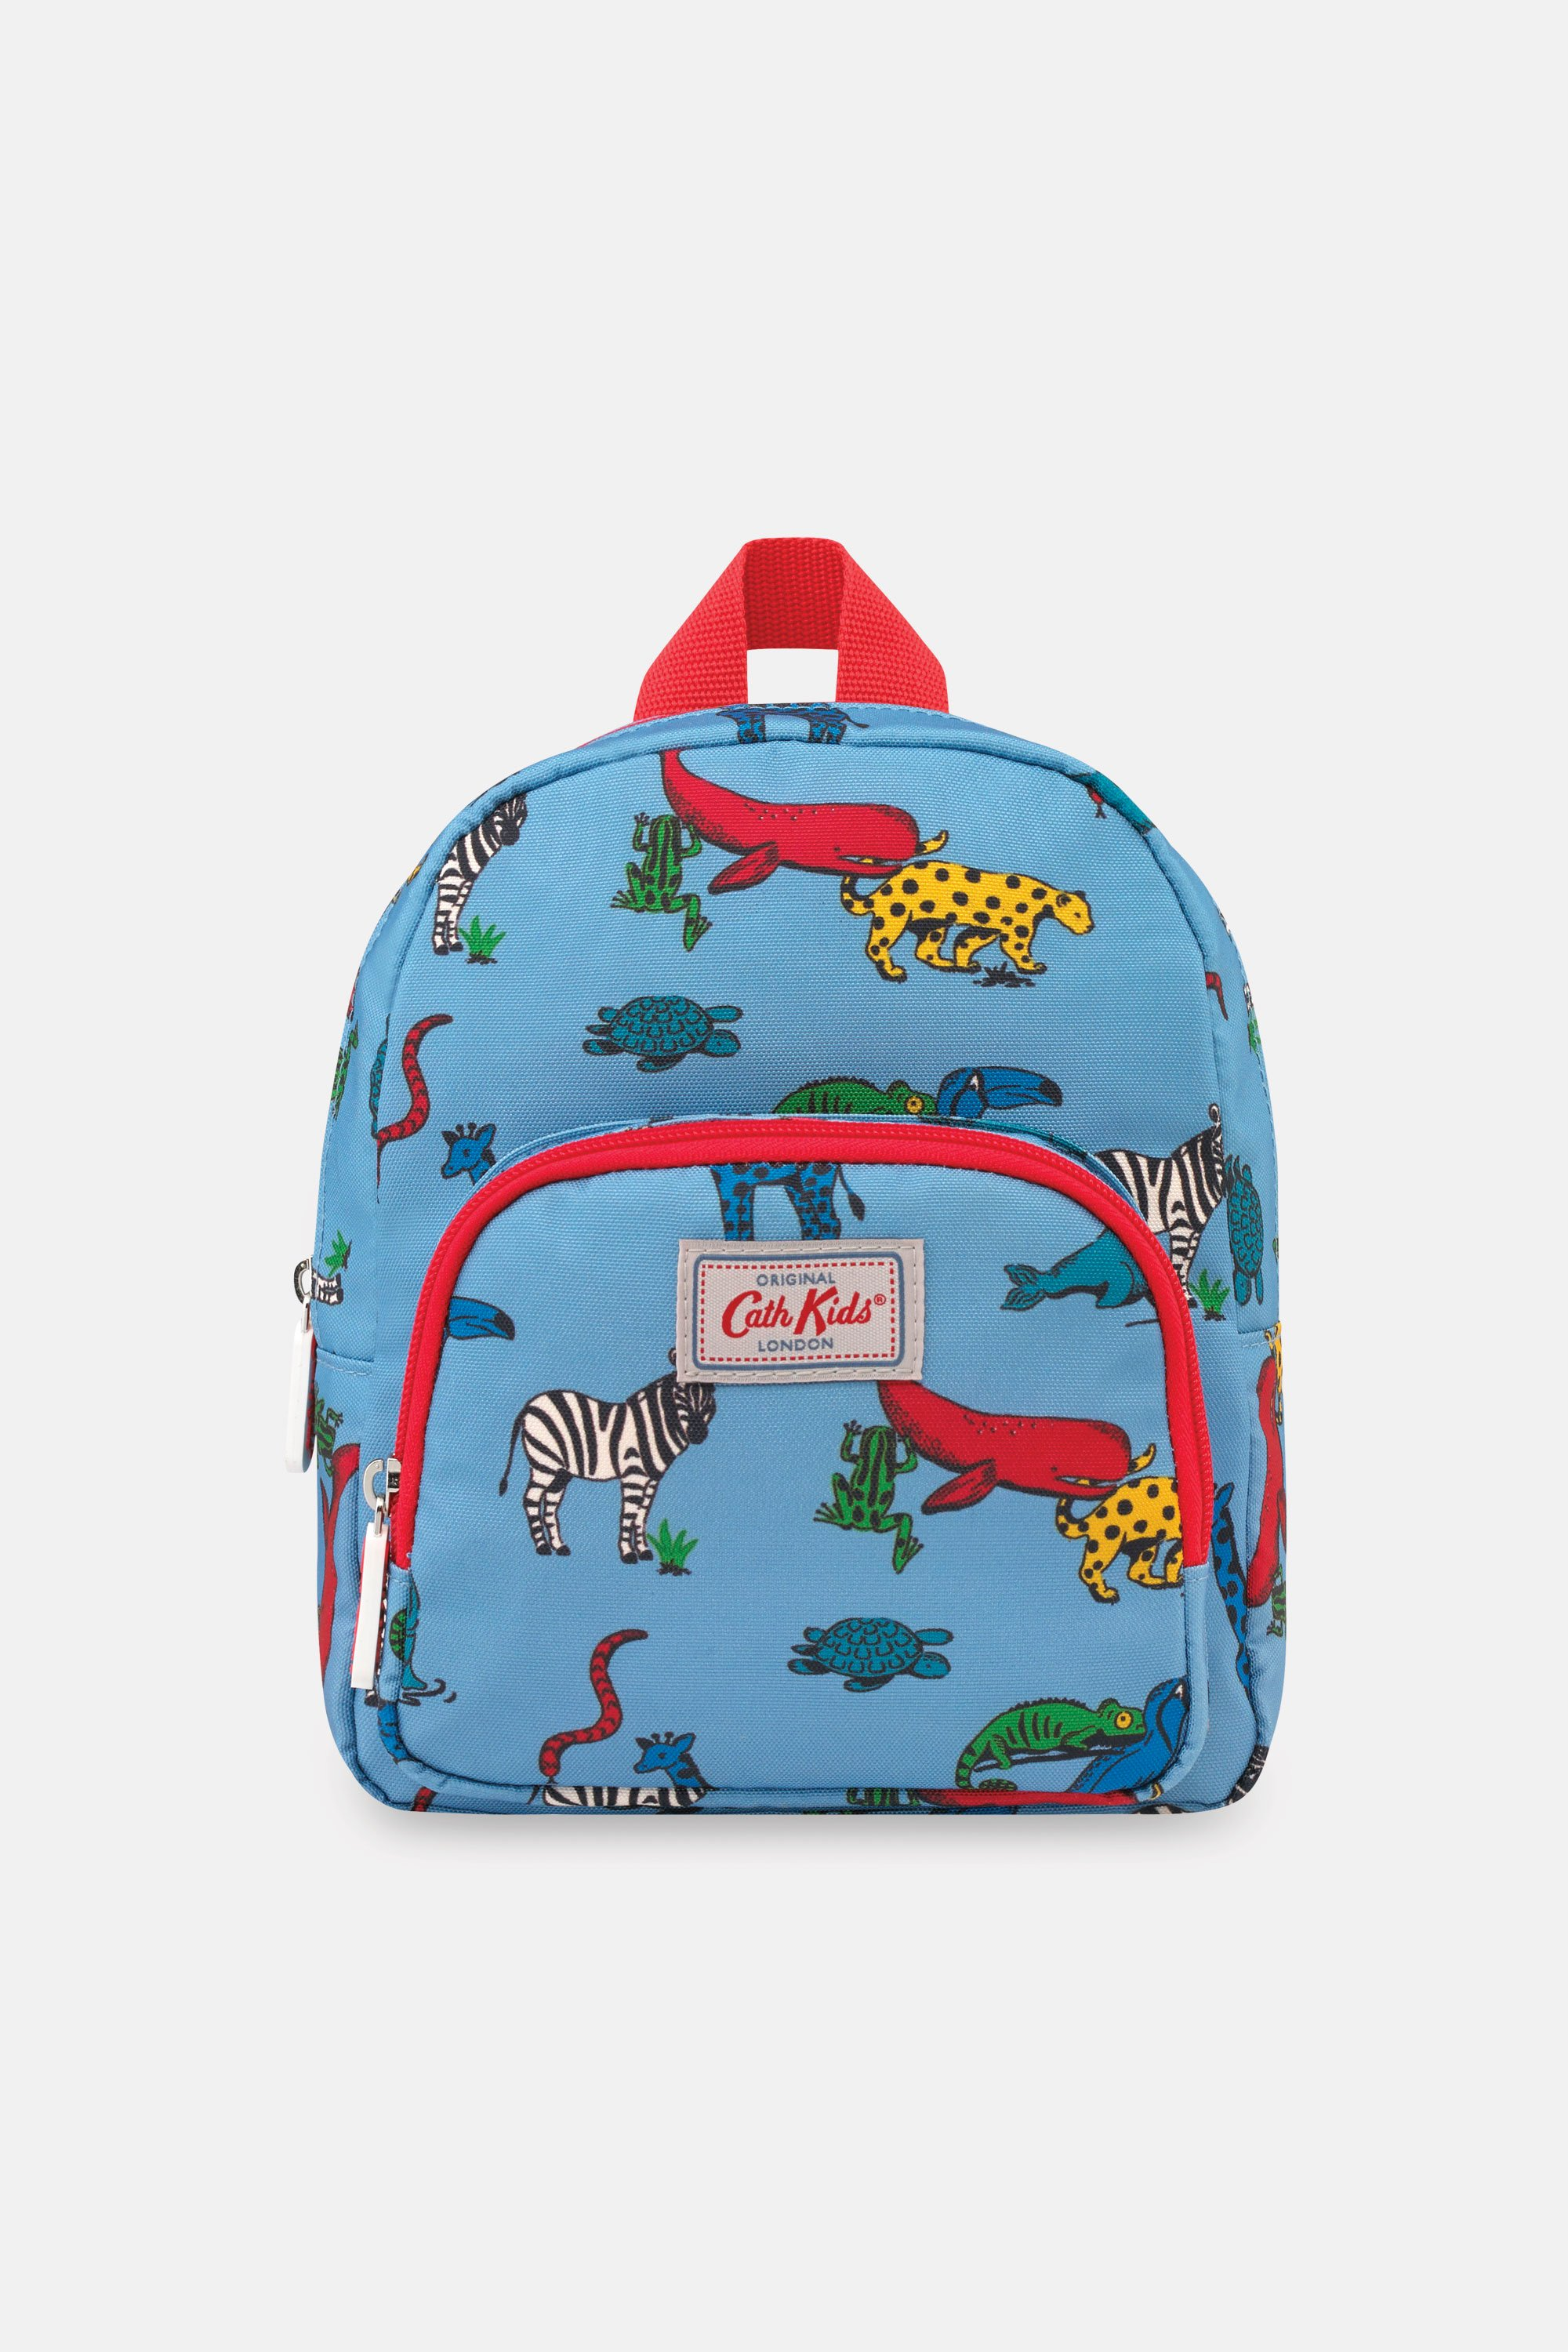 Cath Kidston Animals Kids Recycled Mini Backpack in Blue Grey